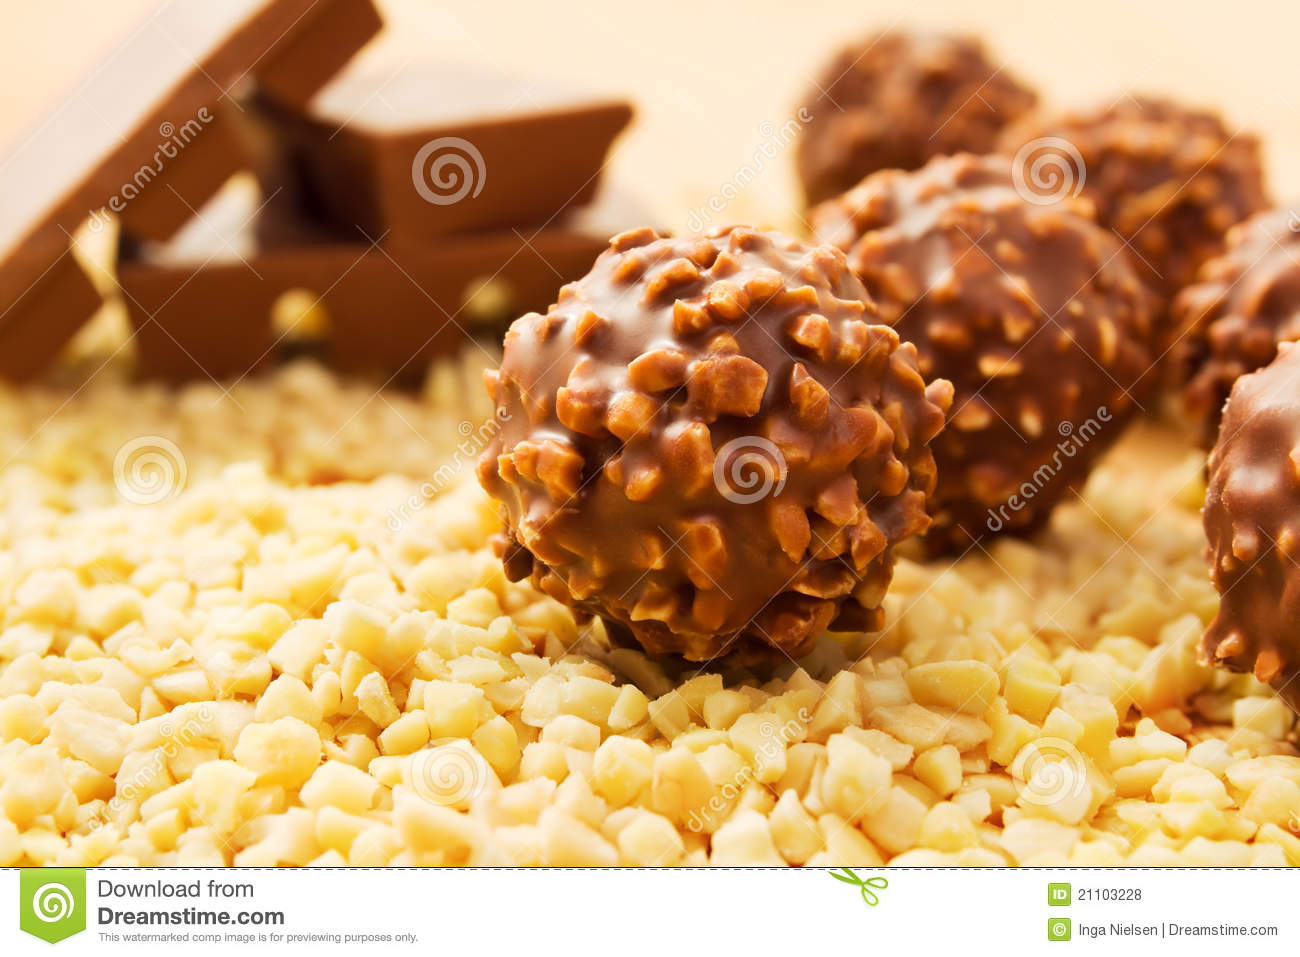 Chocolate Candy With Nuts Royalty Free Stock Photos - Image: 21103228